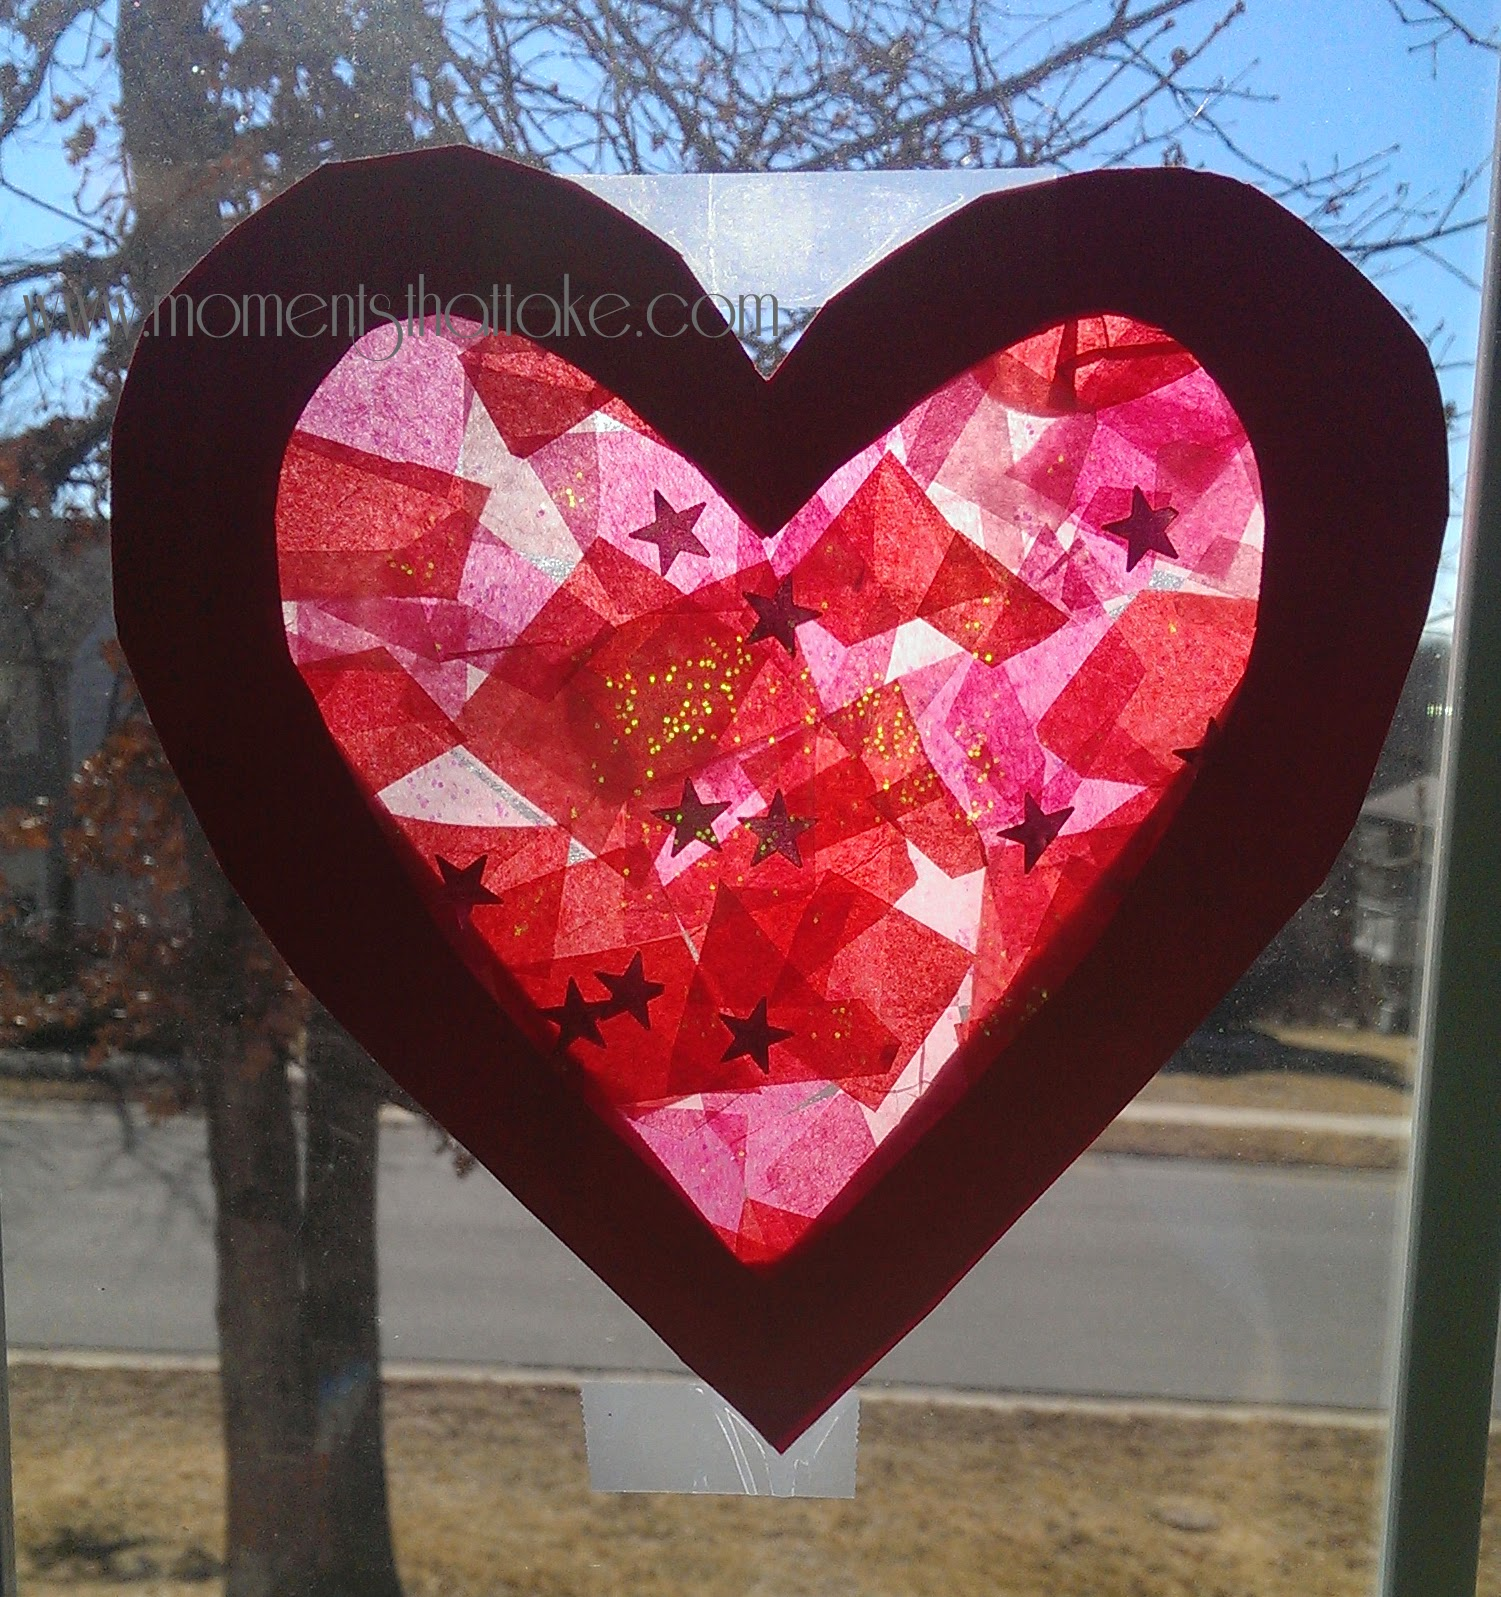 Moments that take my breath away valentine 39 s day crafts for Valentines day art and crafts for preschoolers